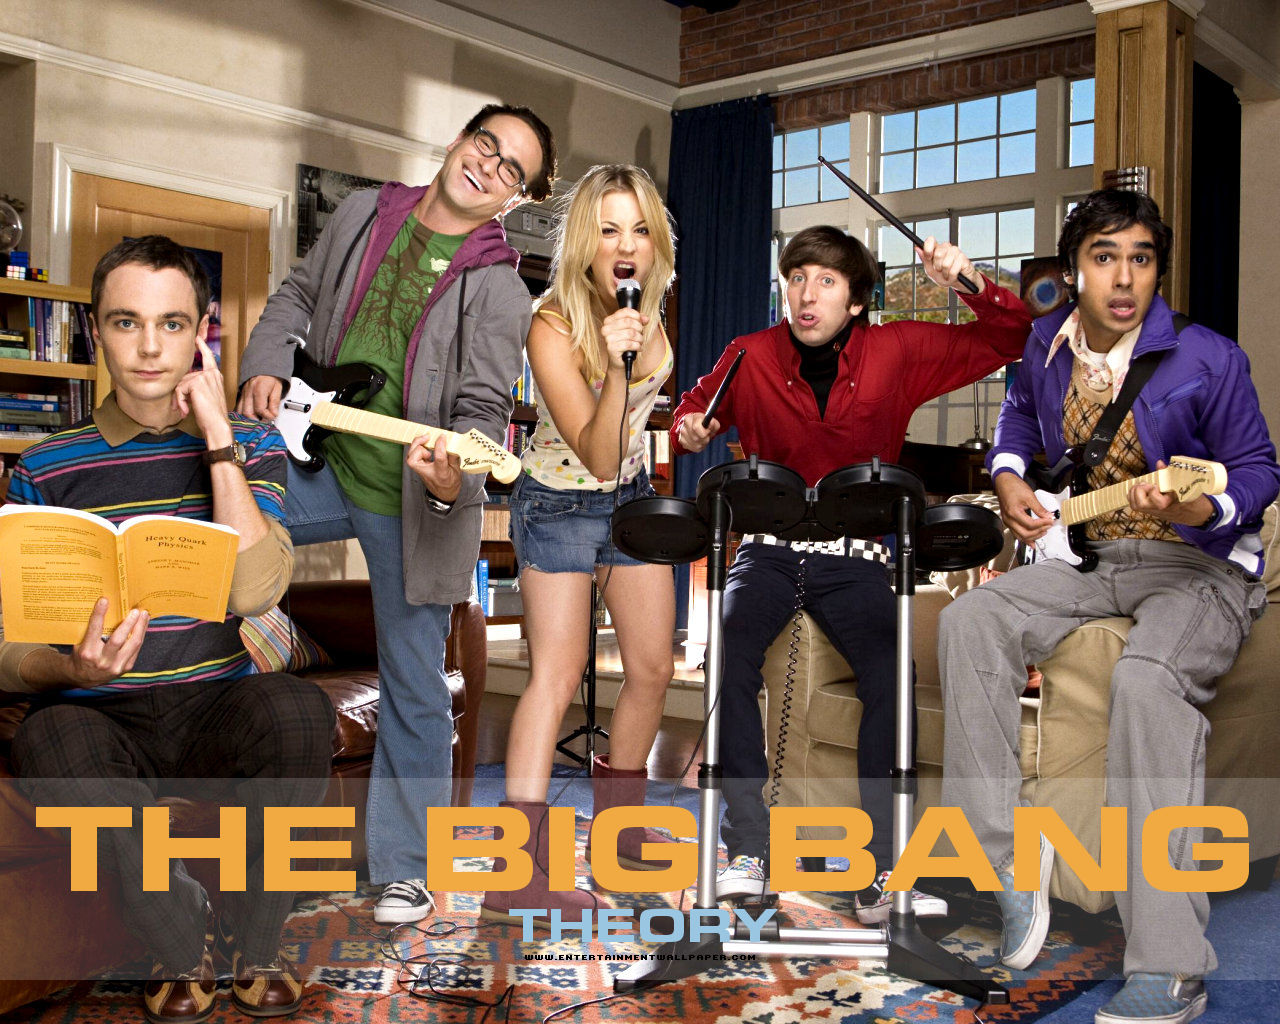 http://3.bp.blogspot.com/_E26Ndy_oKVc/TVBMcC7yJQI/AAAAAAAABOY/3JVhmZWKVII/s1600/tv_the_big_bang_theory01.jpg